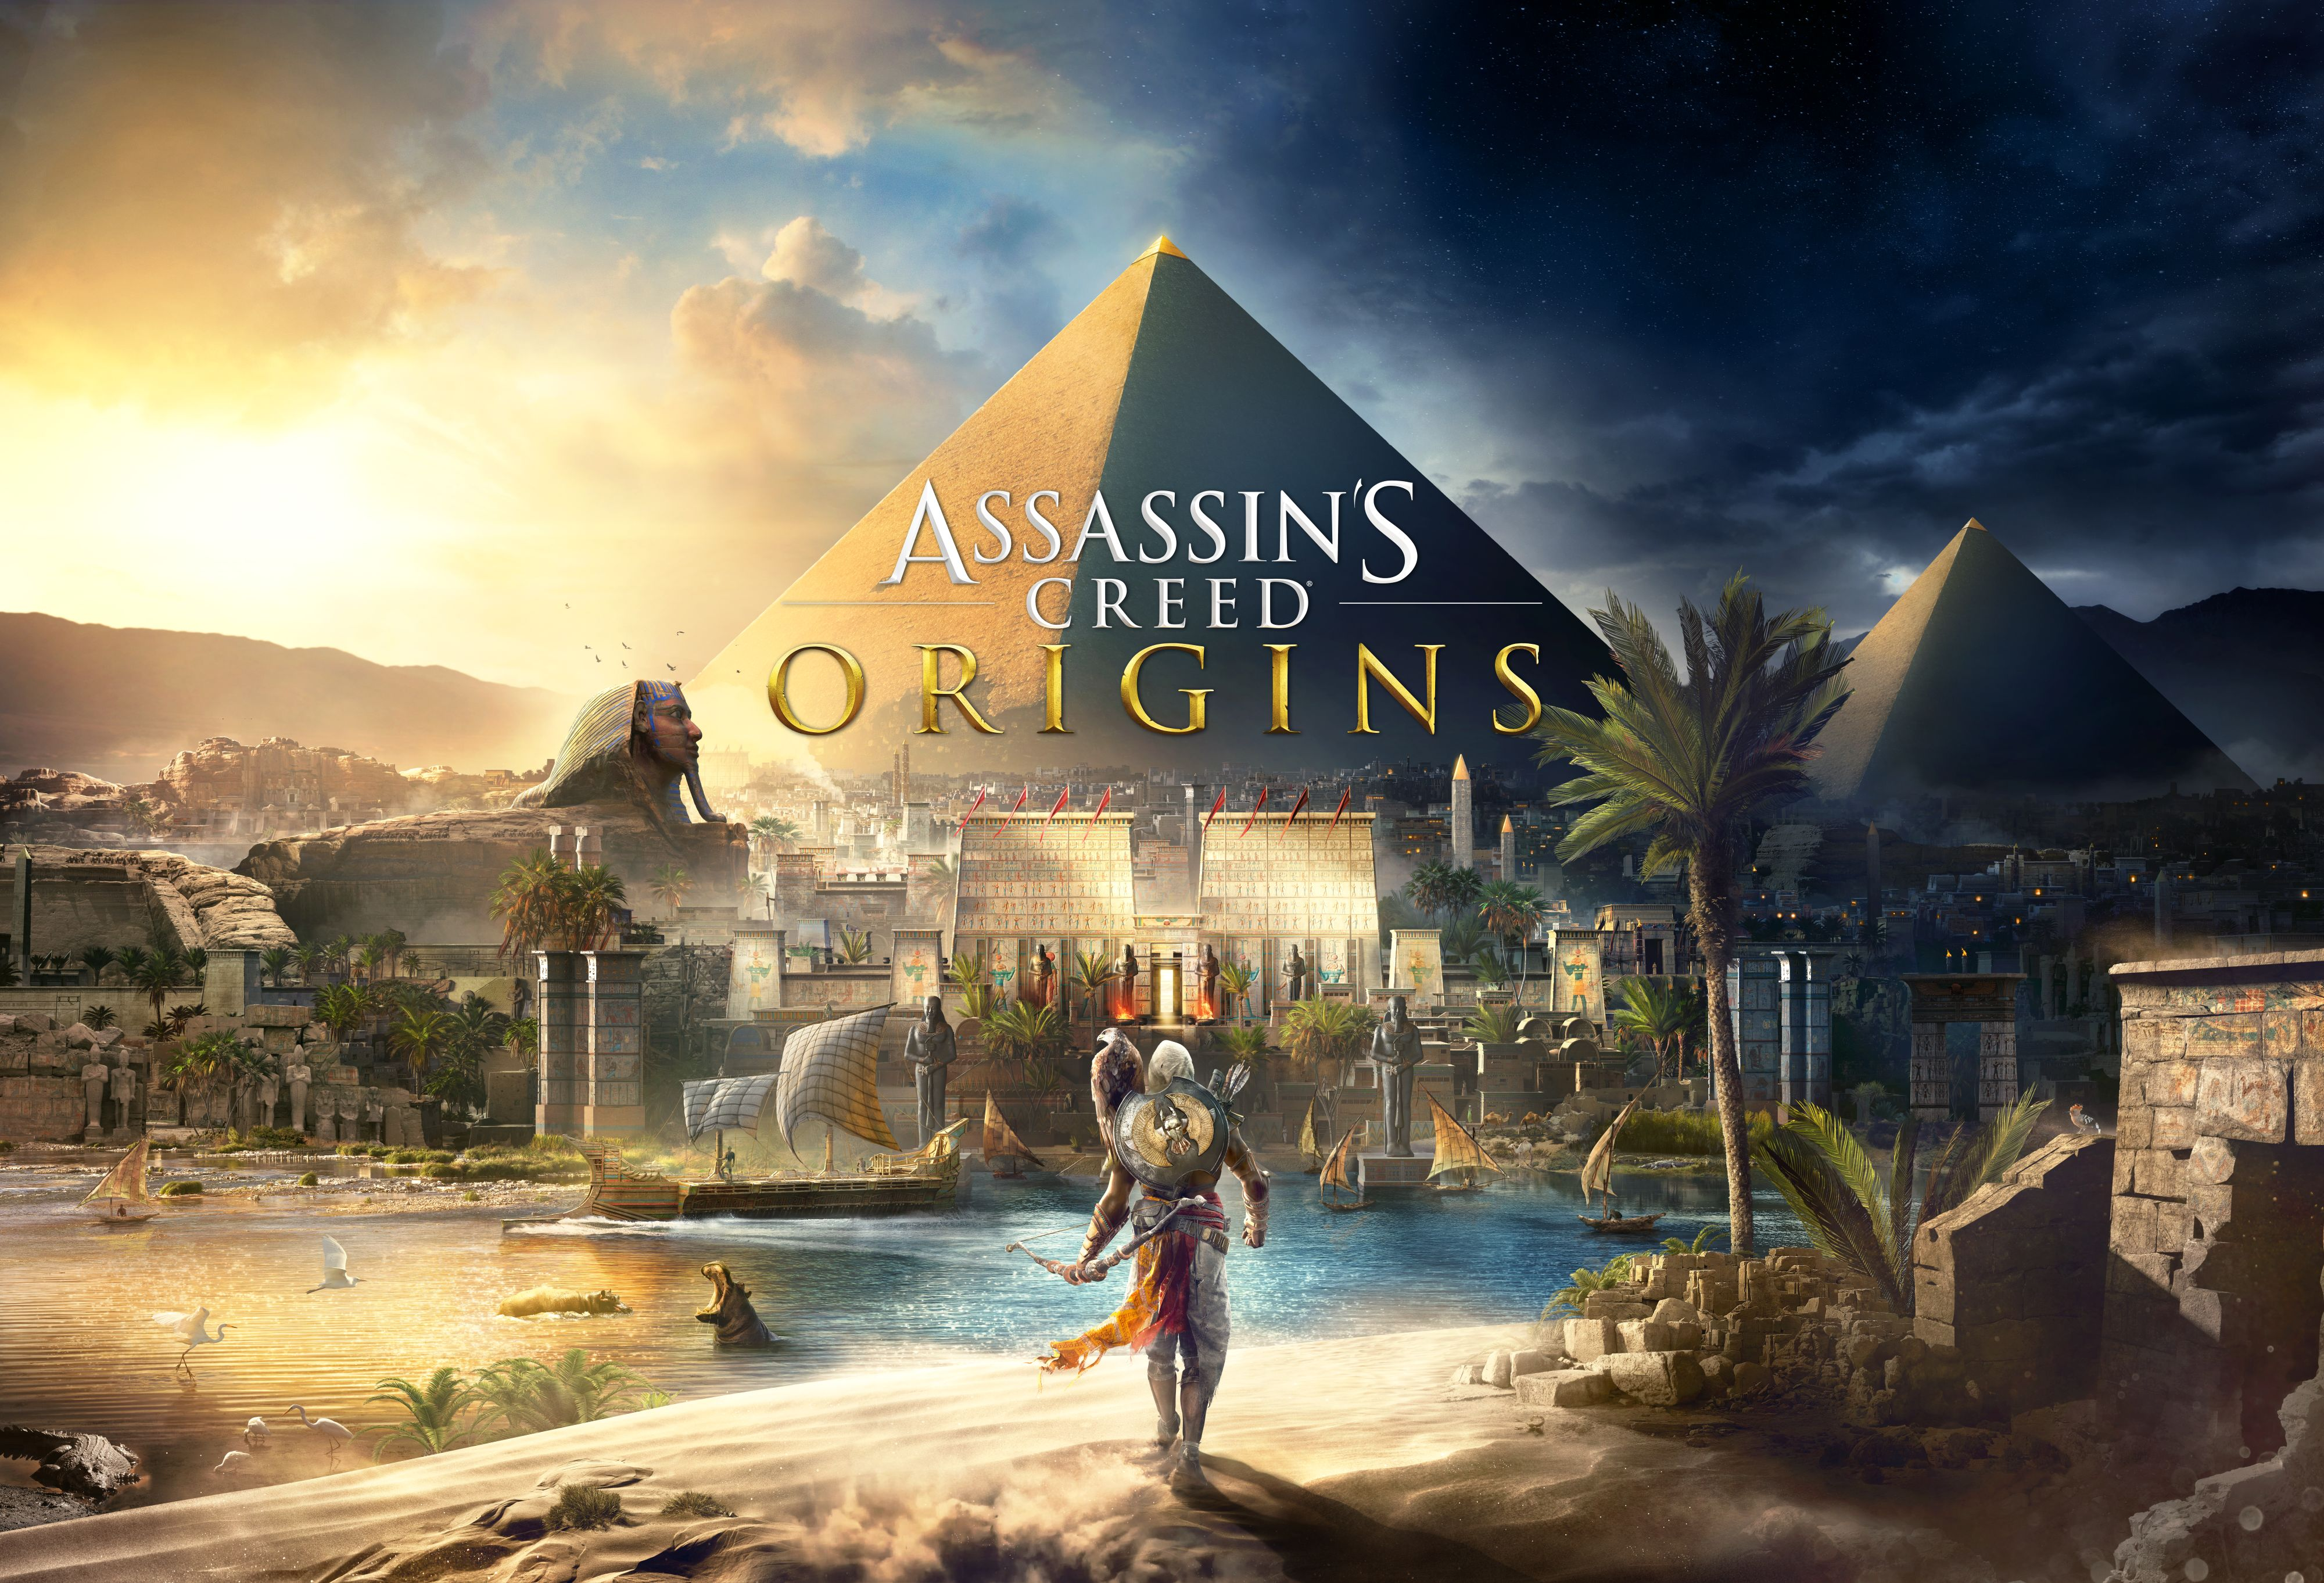 Assassins Creed Origins Gets First Gorgeous Screenshots And Box Art Showing Its Beautiful Egypt